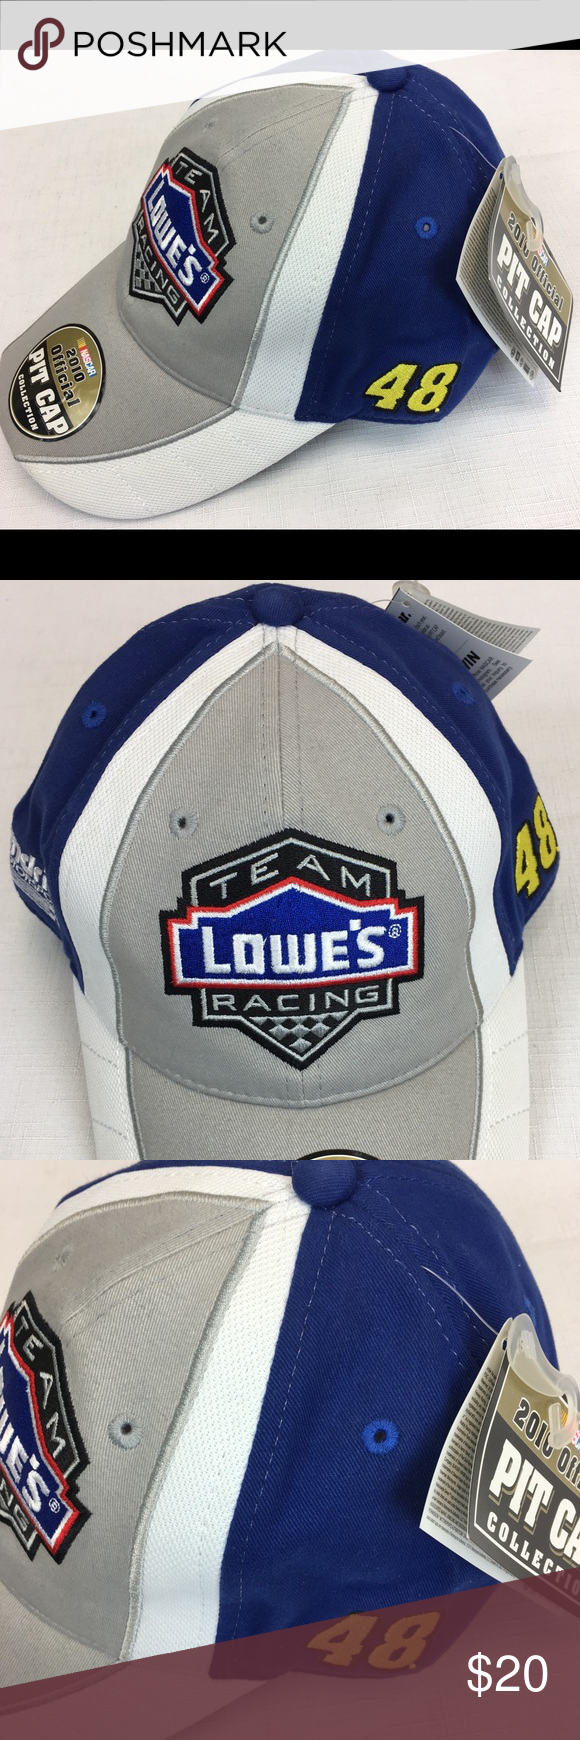 ceb189fa1d3bb NWT NASCAR  48 Lowe s Racing Hat Baseball Cap Brand new with tags! For  NASCAR